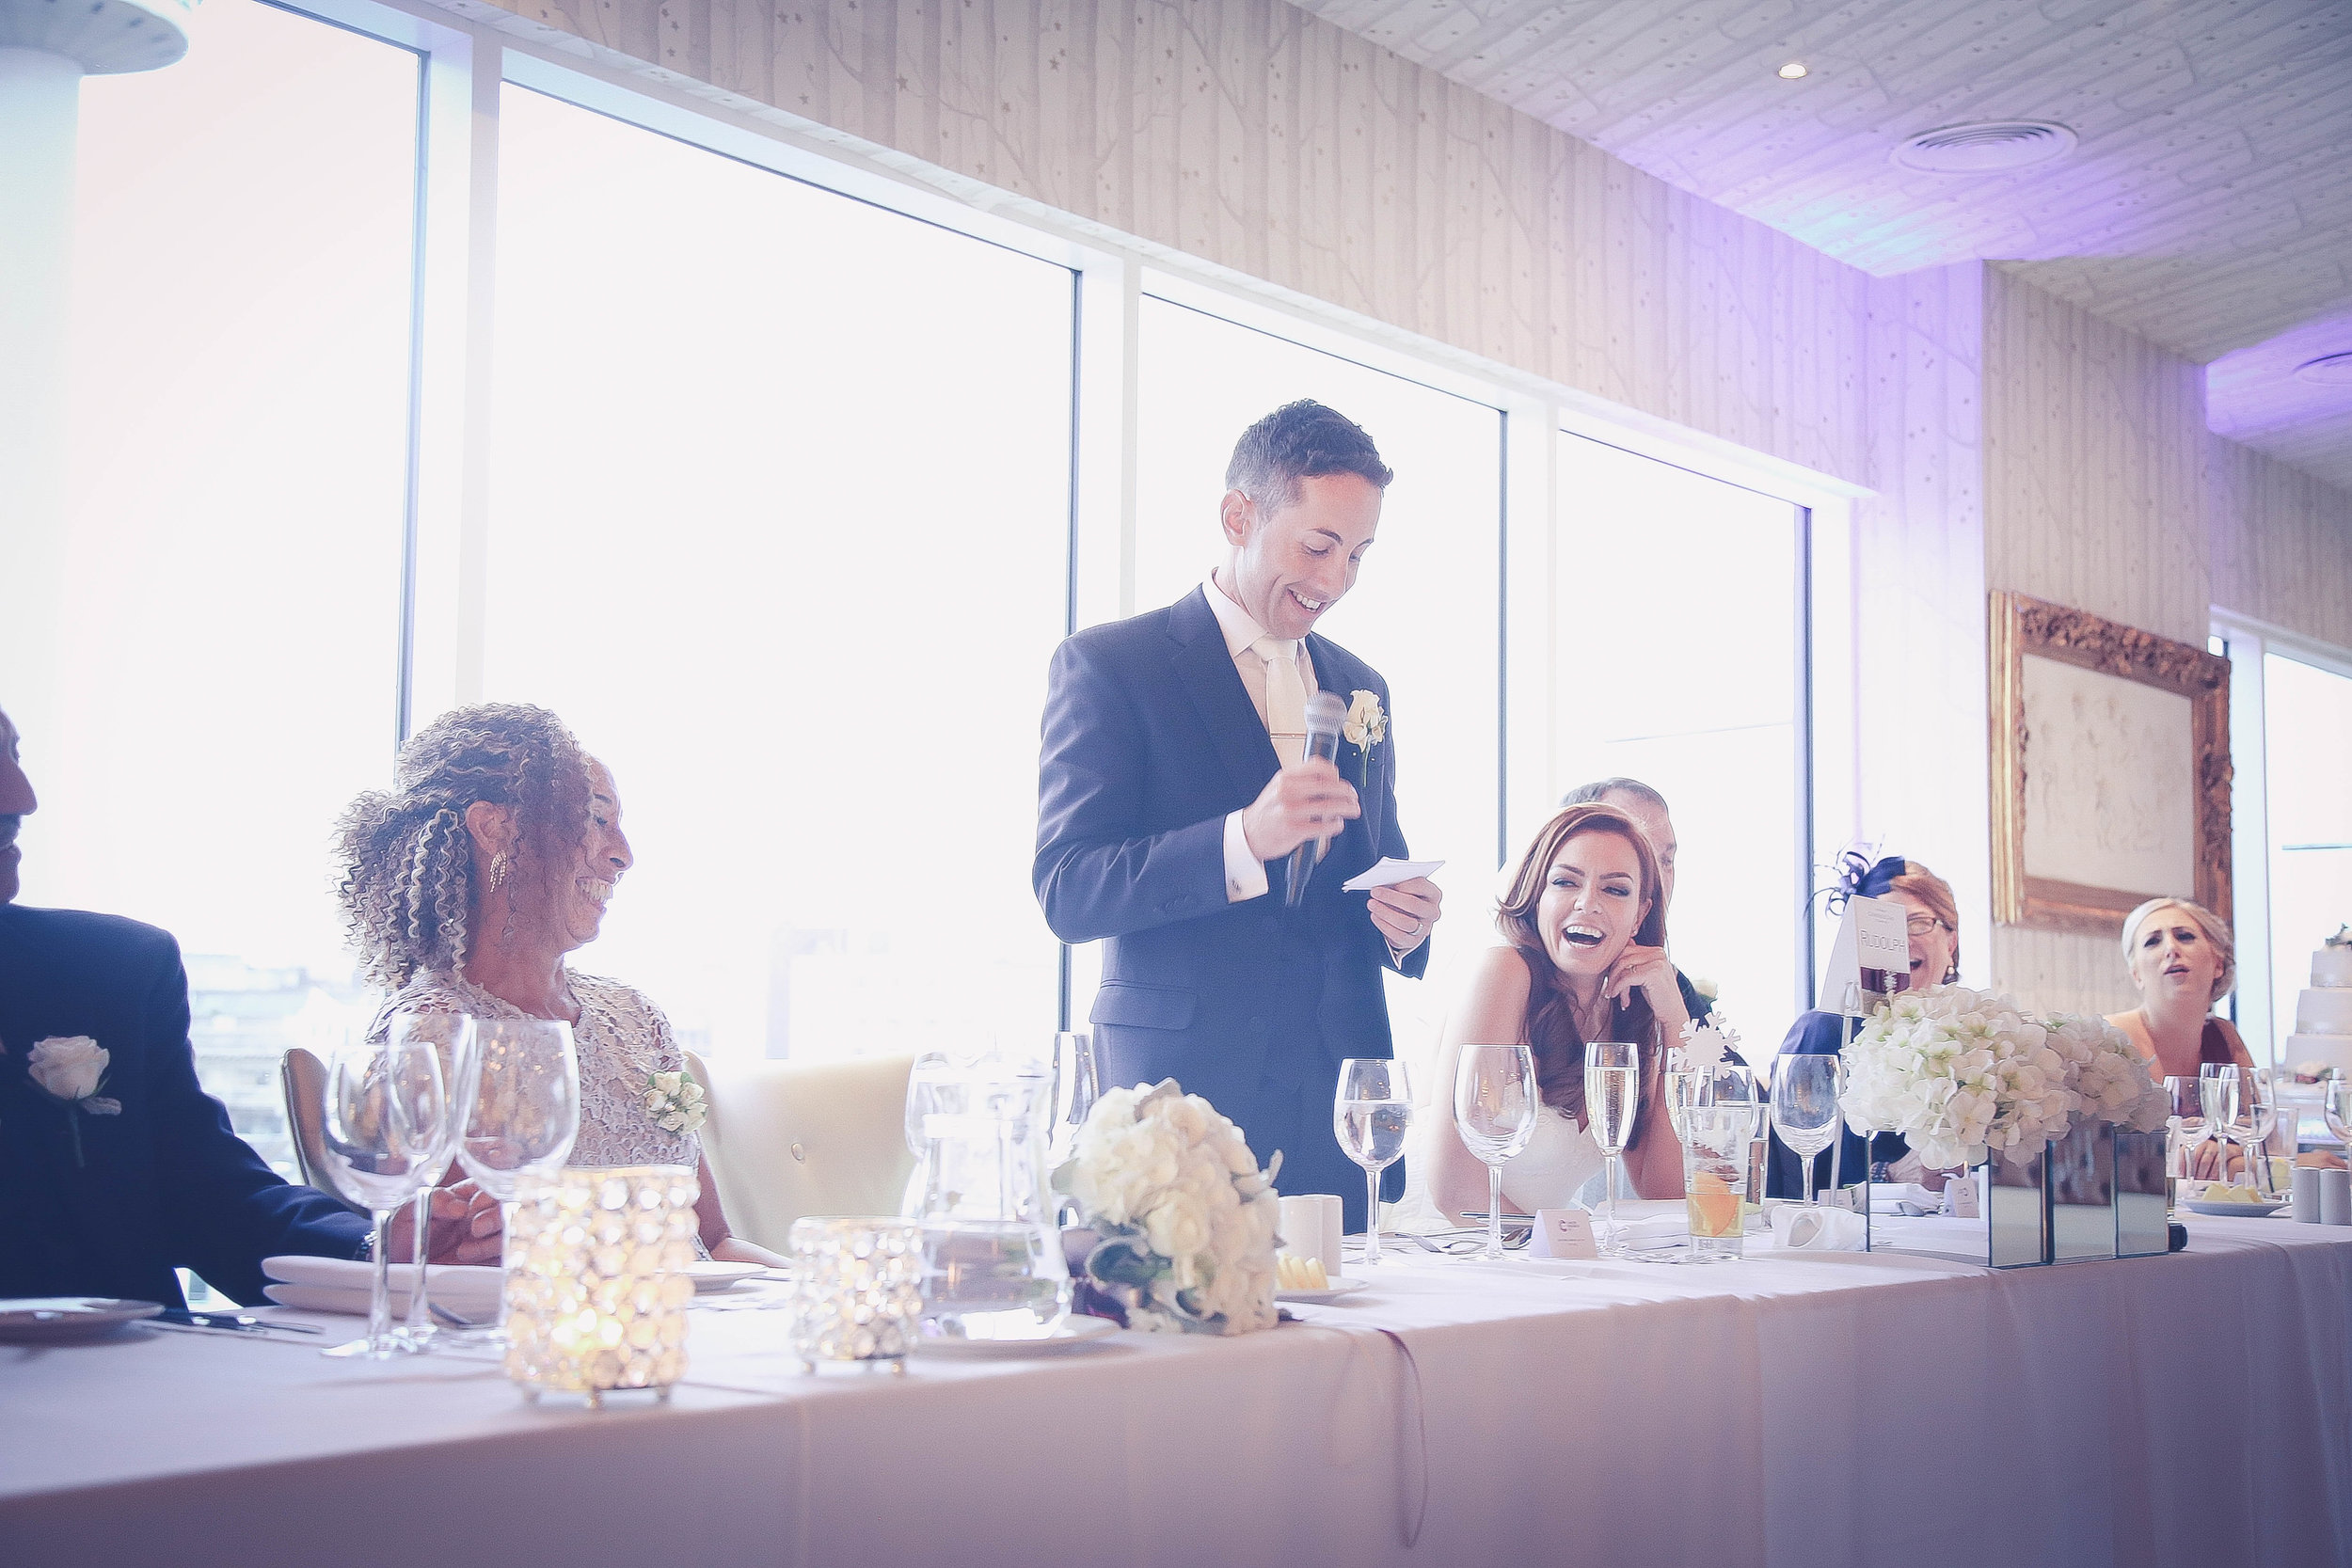 Weddings at the shankly hotel liverpool-127.jpg